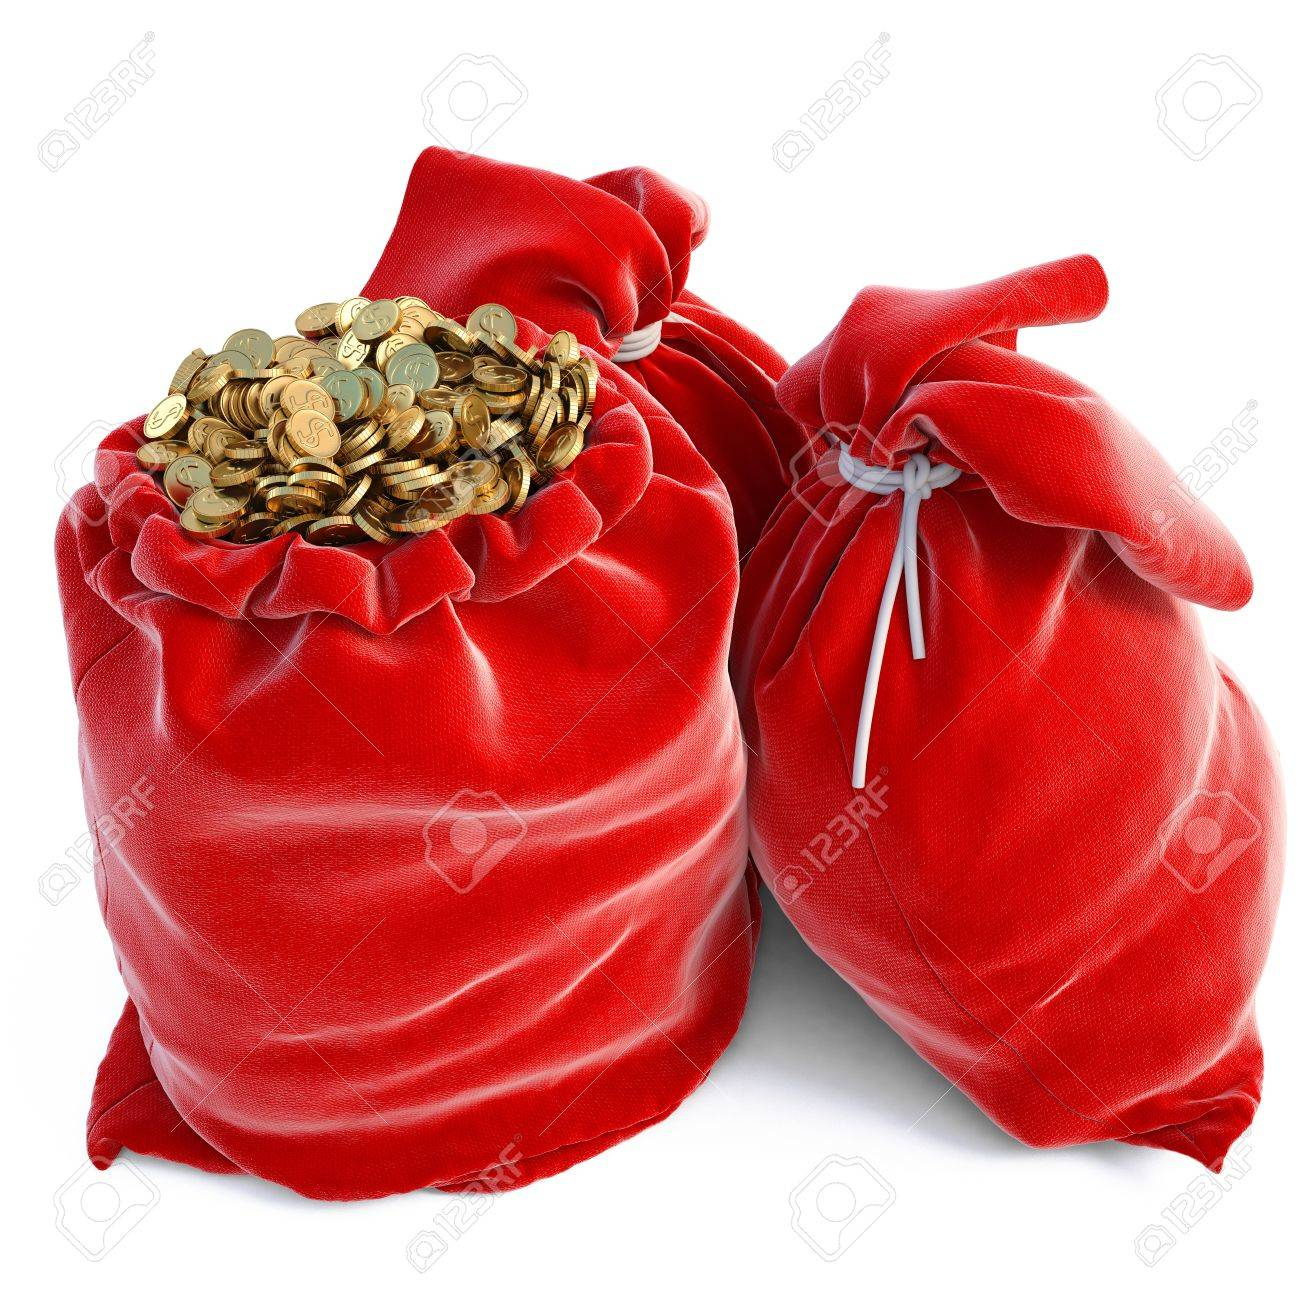 red bags full of golden coins. isolated on white. Stock Photo - 11457583